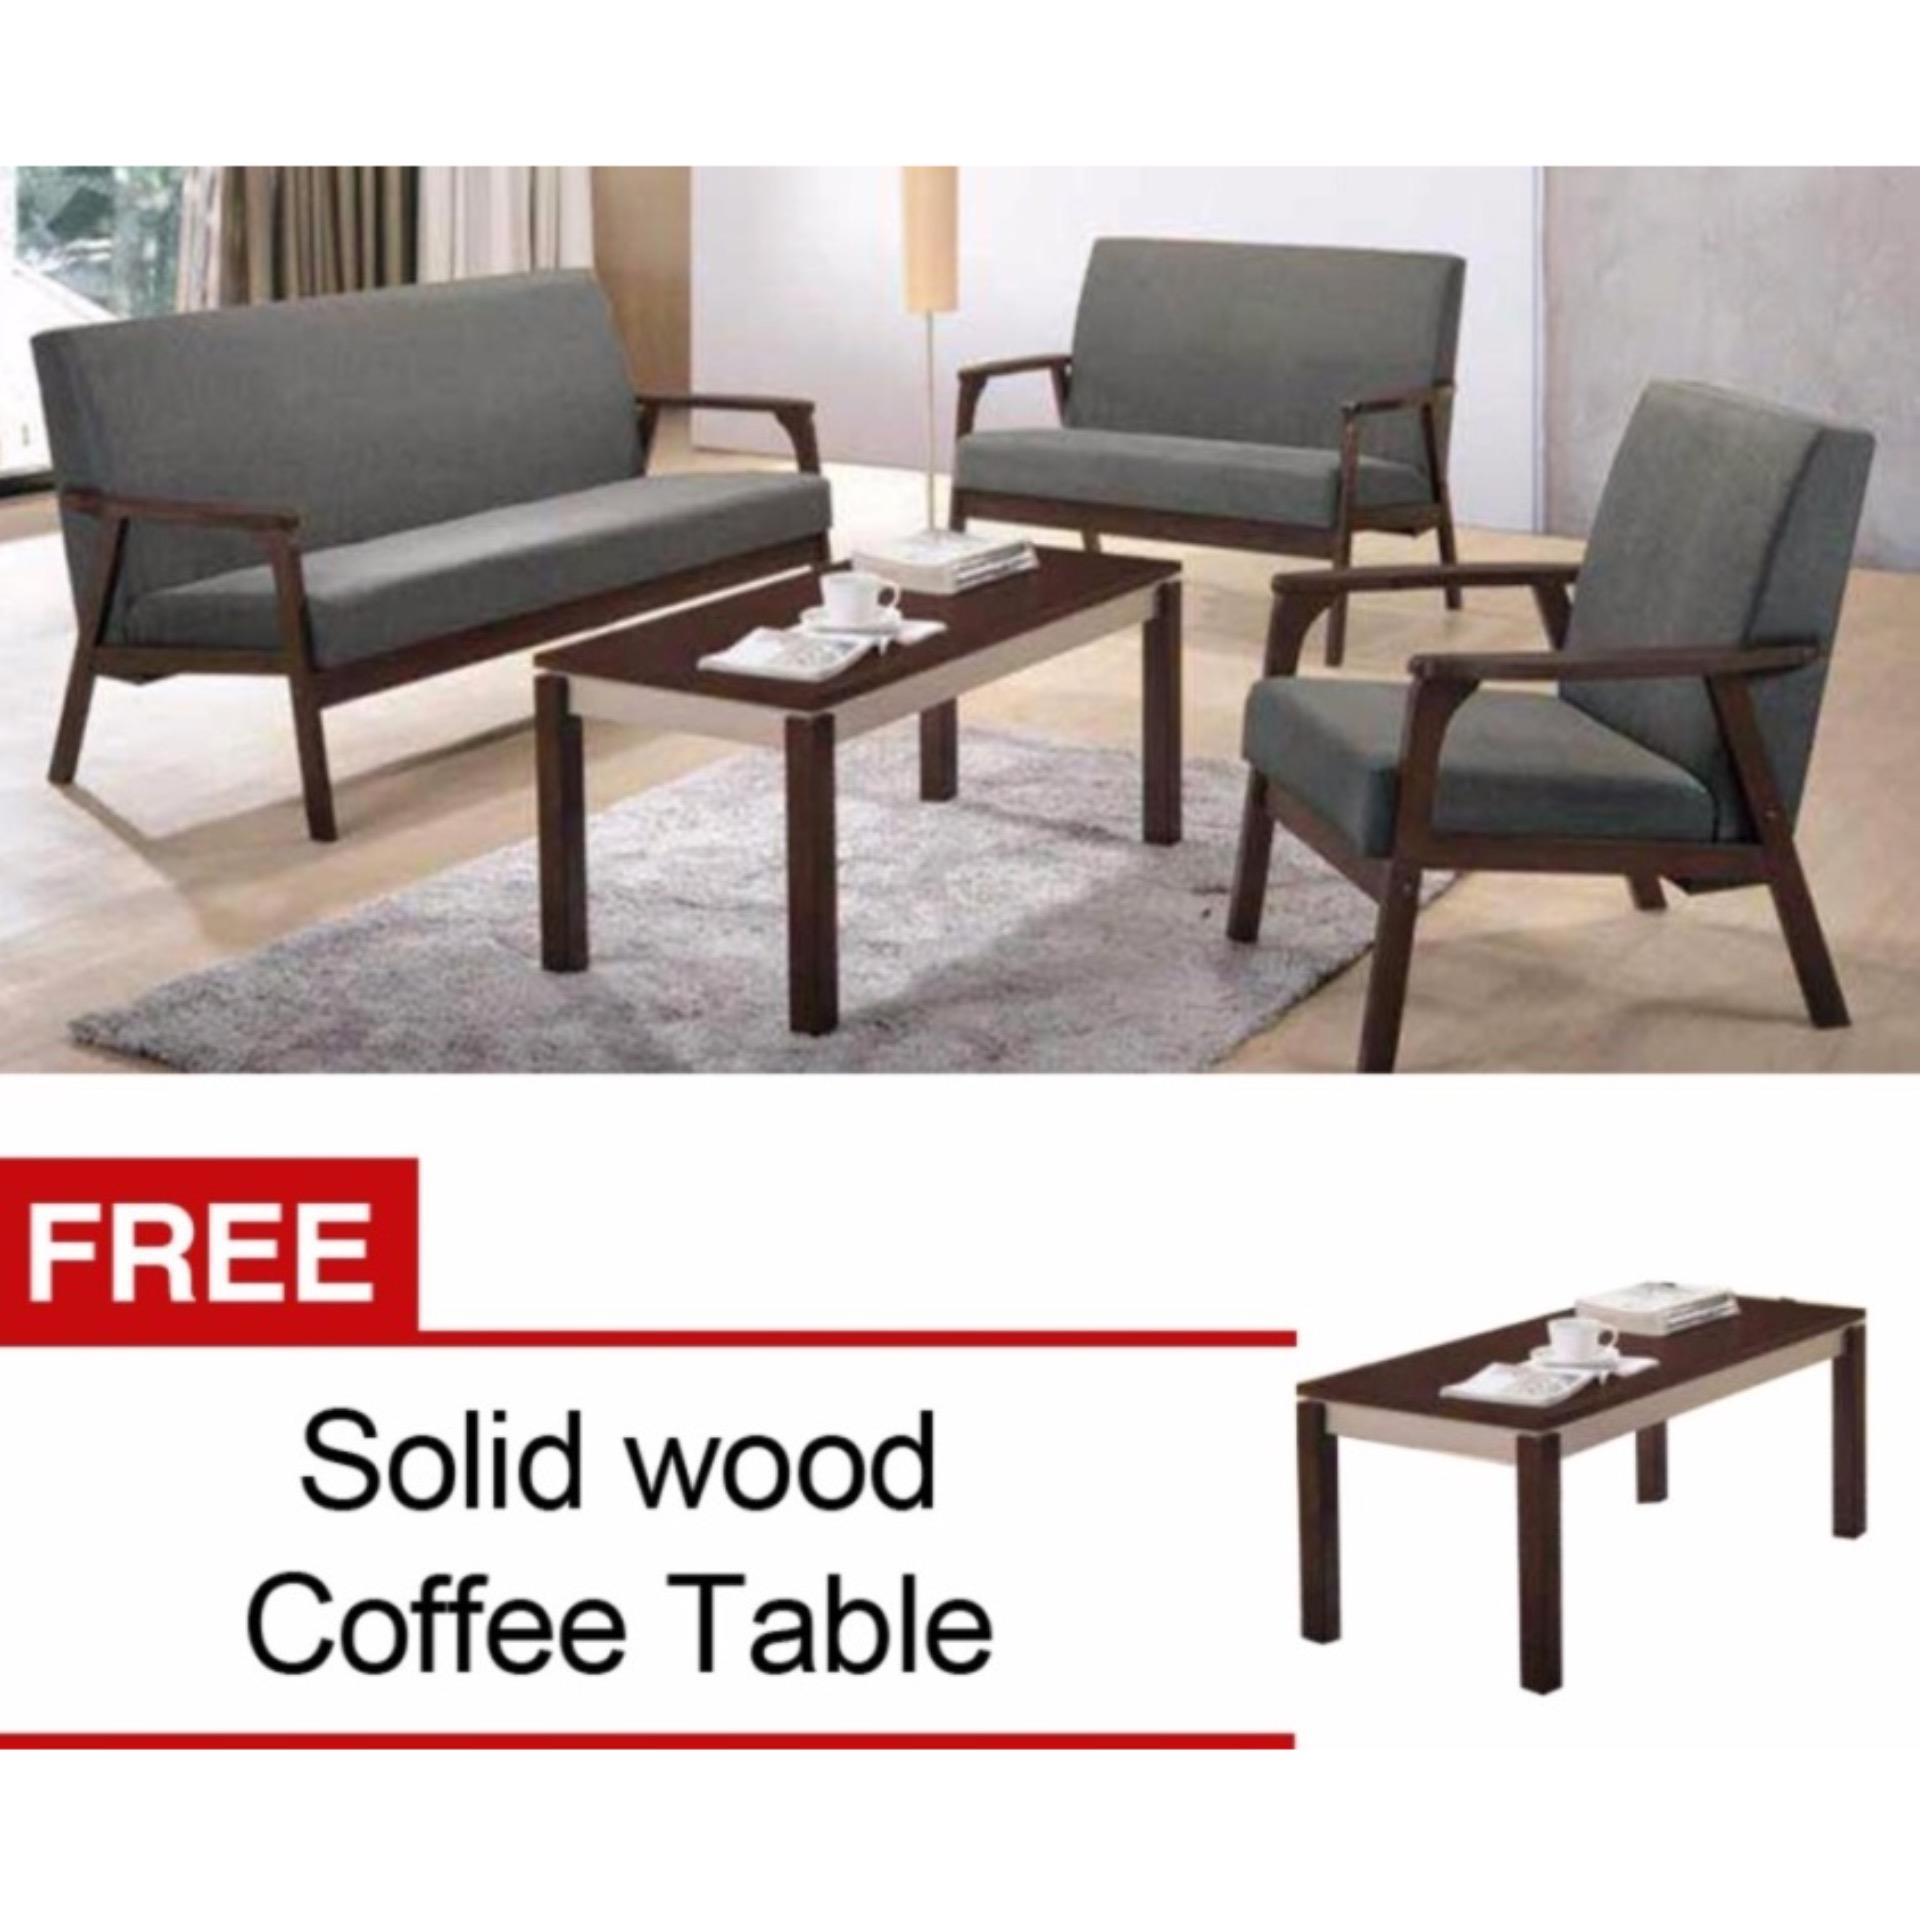 Wondrous Solid Wood 1 2 3 Fabric Sofa Set With Coffee Table Wood Sofa Download Free Architecture Designs Photstoregrimeyleaguecom